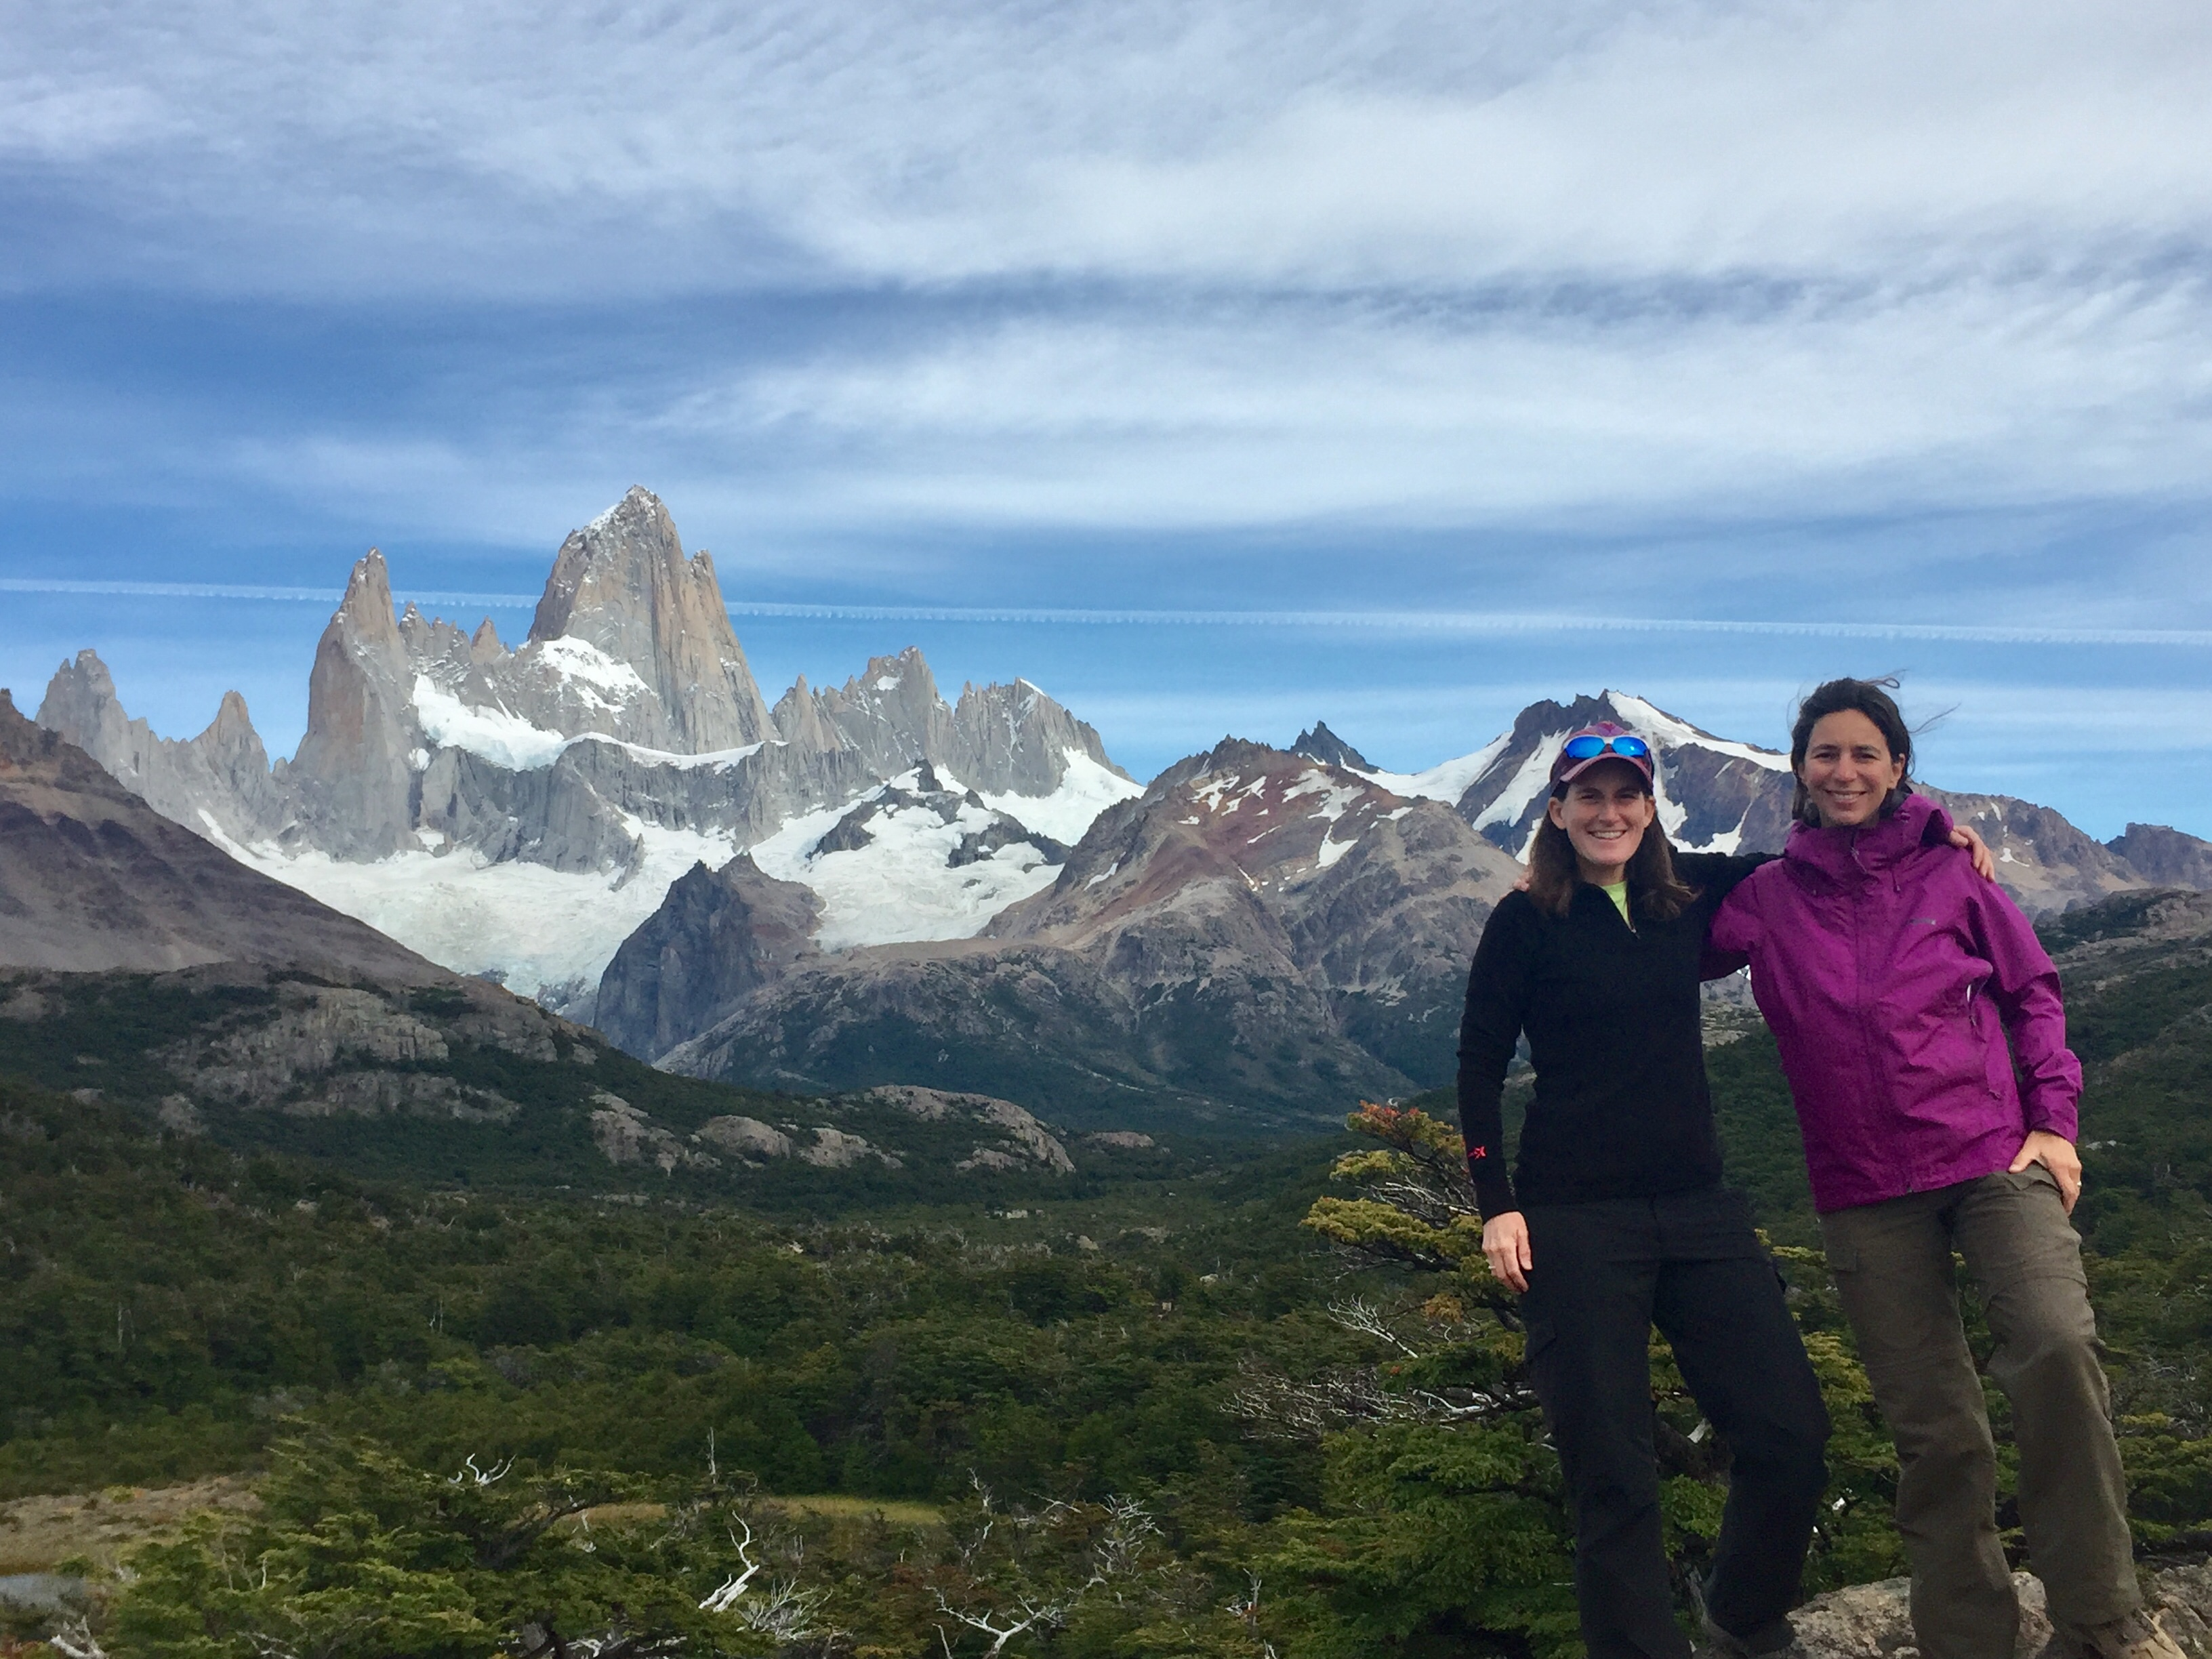 An Interview with Maria Abud, Owner of Patagonia Trails